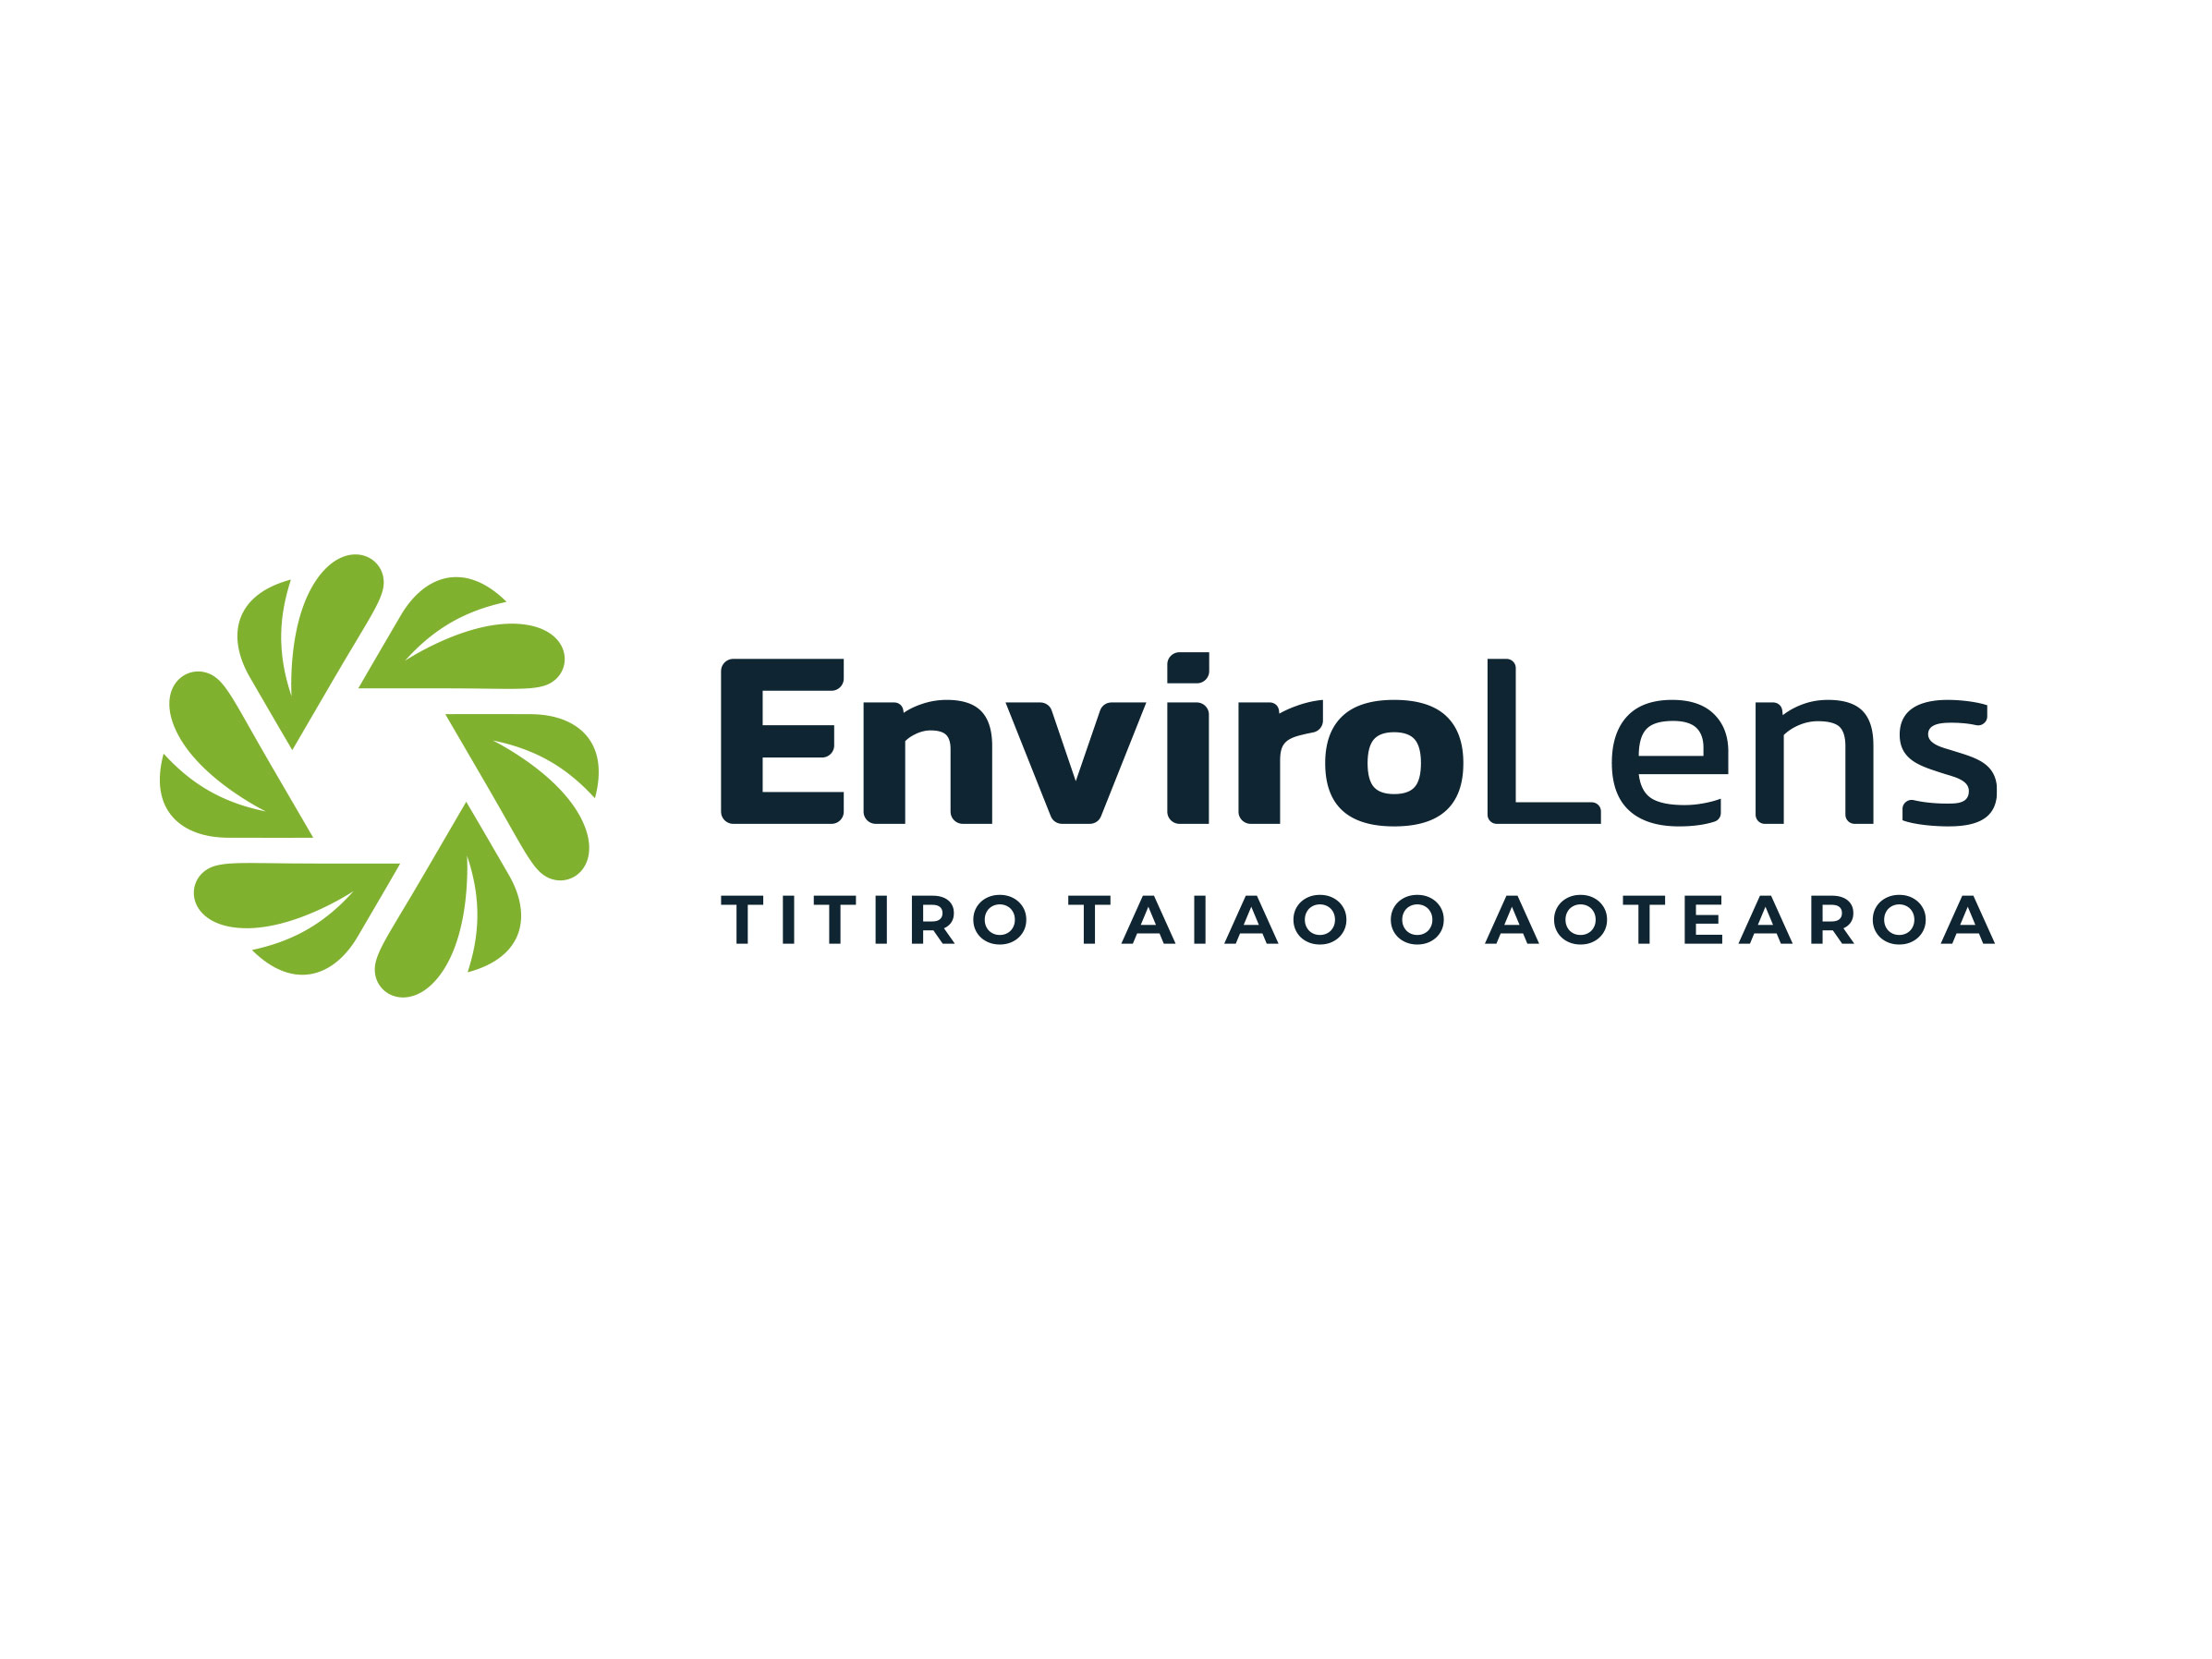 Nature inspired logo design in green and navy